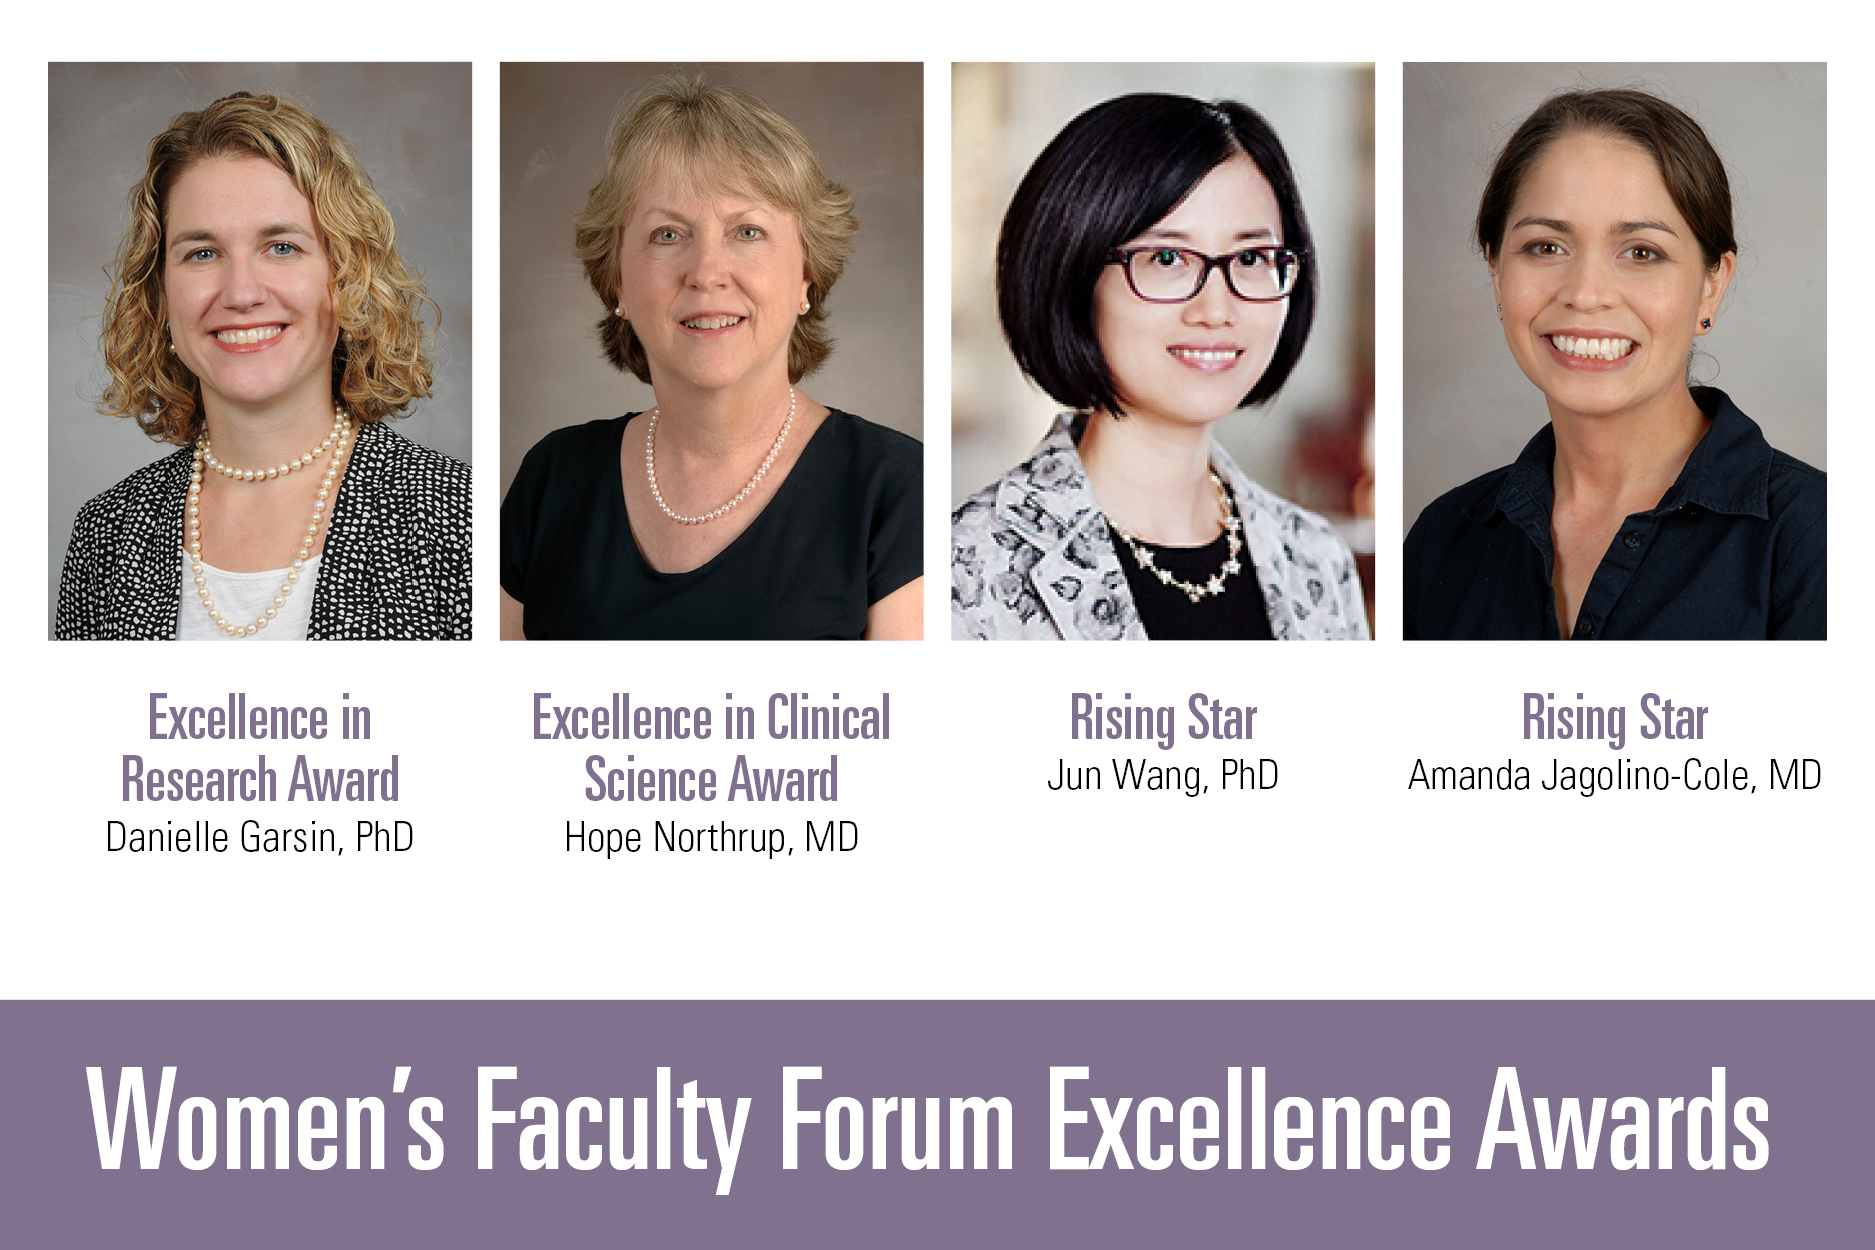 image from Four earn Women's Faculty Forum Excellence Awards